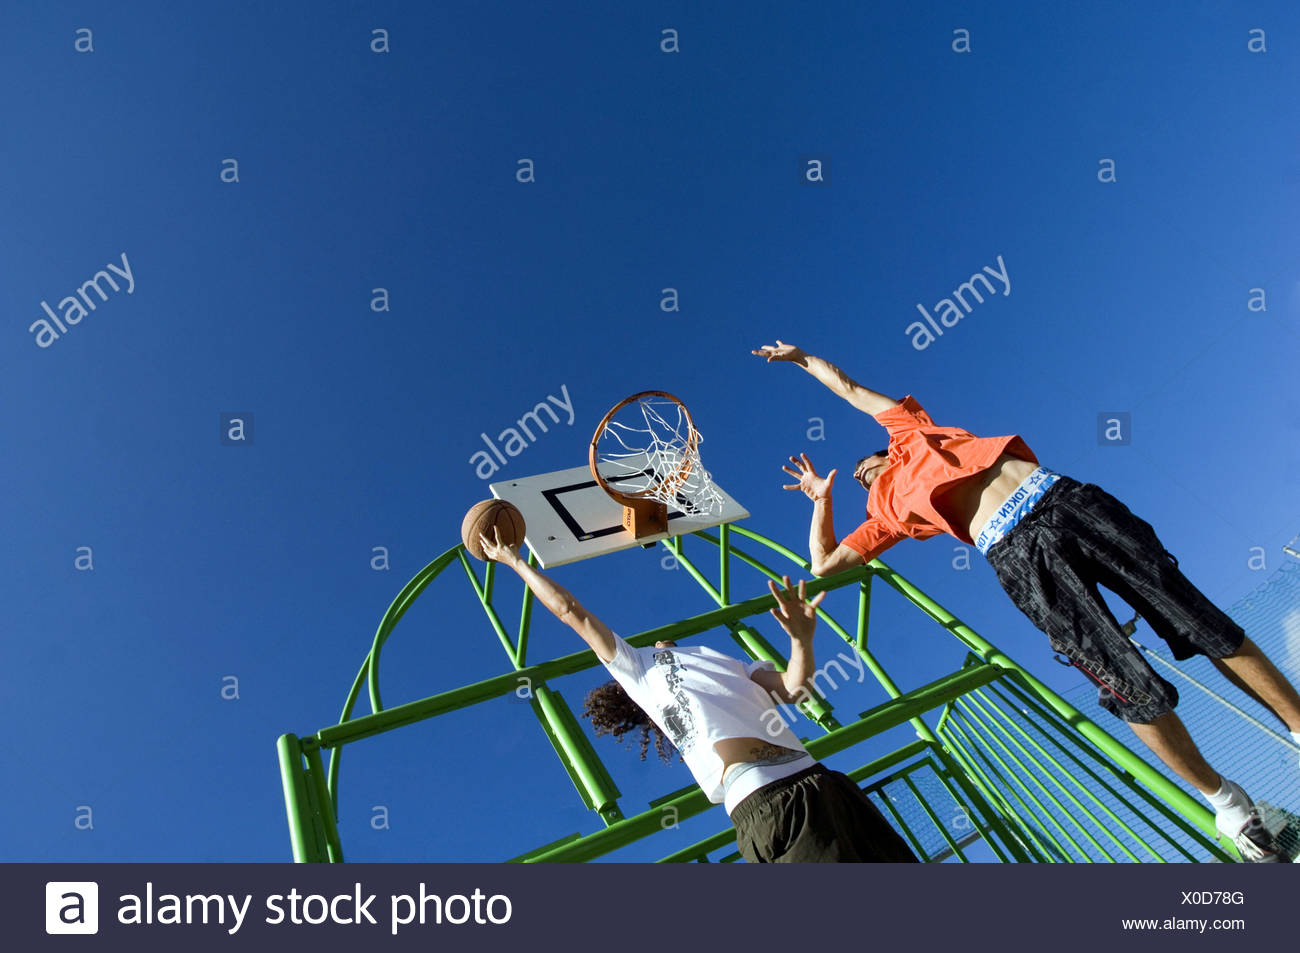 adolescents playing basket ball - Stock Image